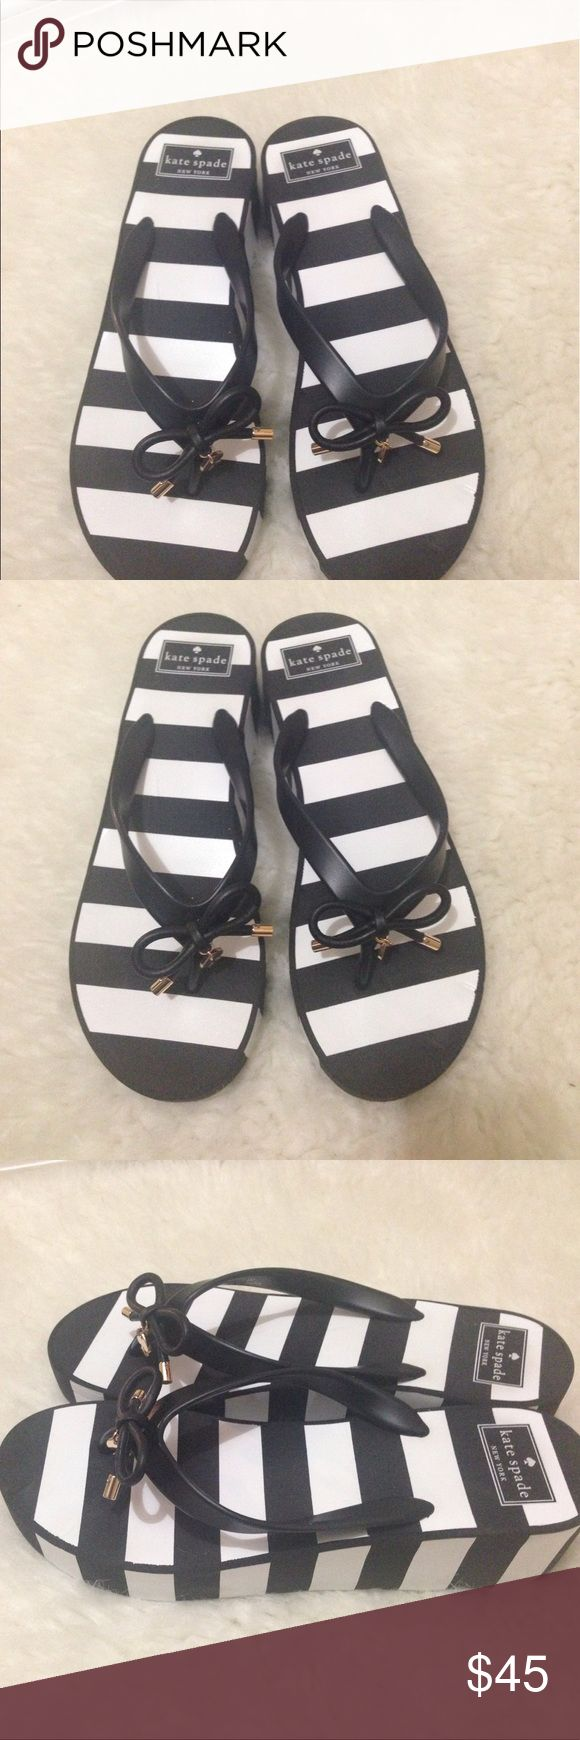 Kate Spade black and white stripe slippers Adorable Kate Spade black and white stripe slippers , lovely addition to any fun girl's closet 😍8 medium kate spade Shoes Slippers